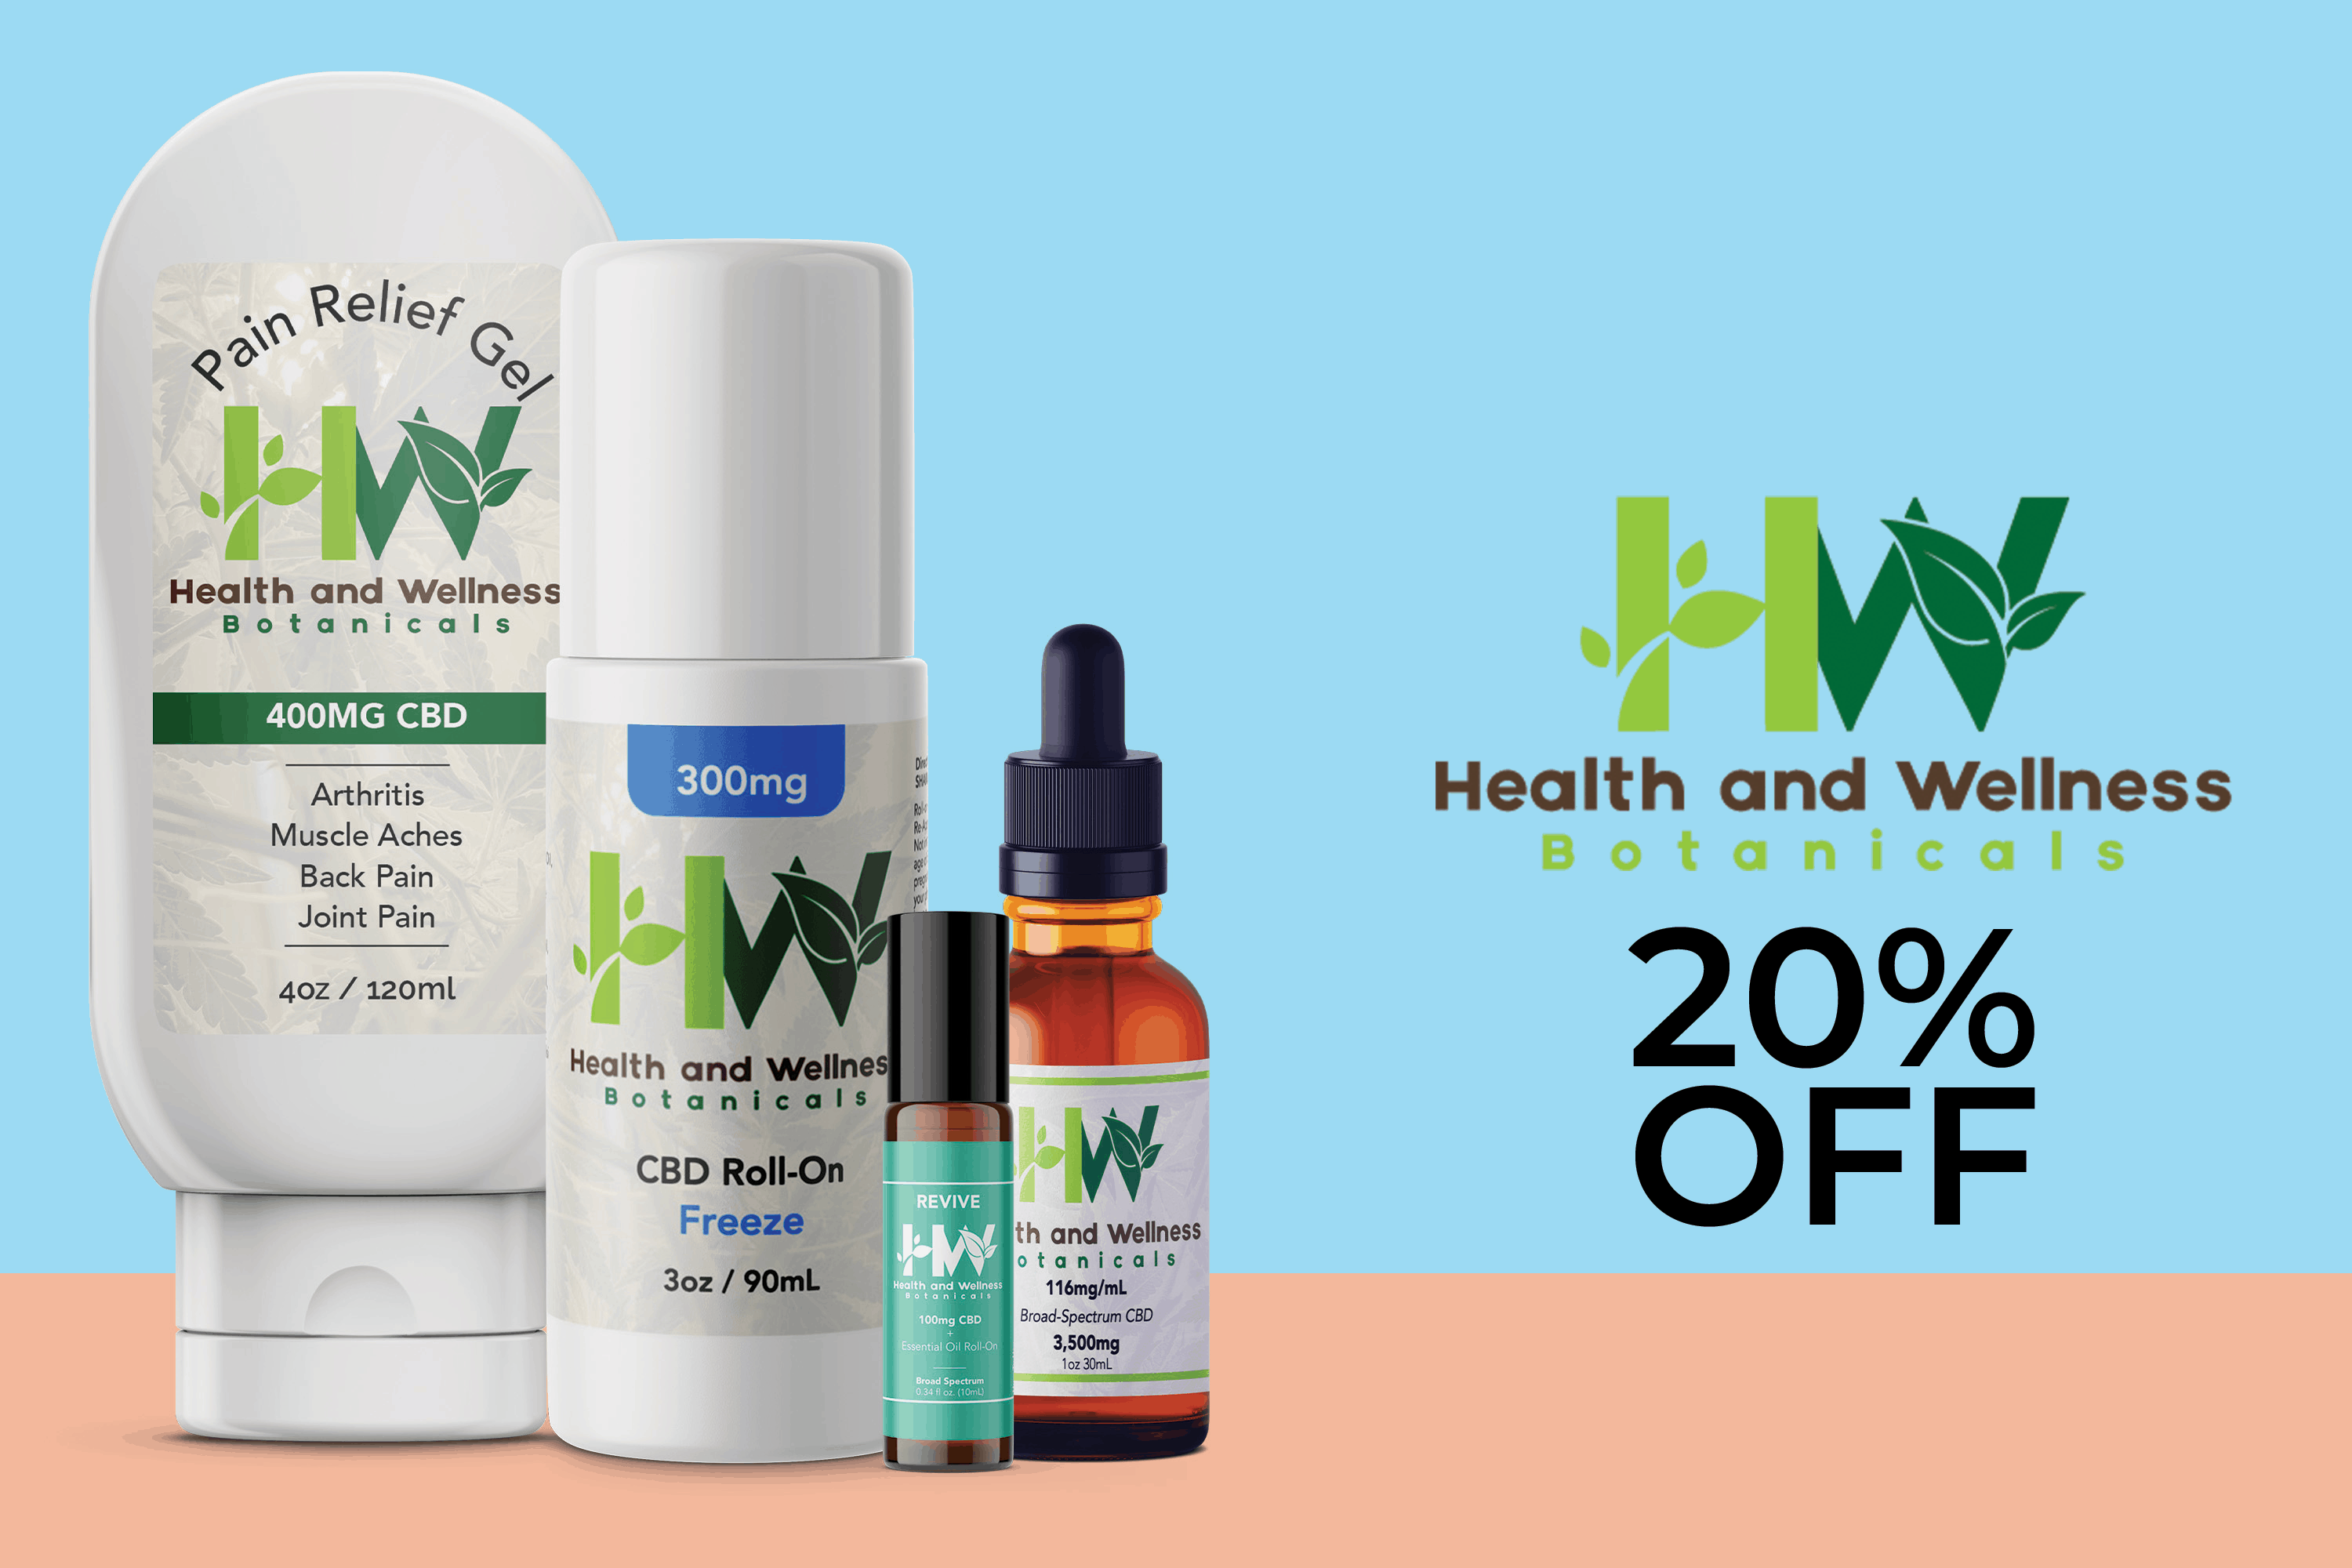 Get Health and Wellness Botanicals Coupon Codes